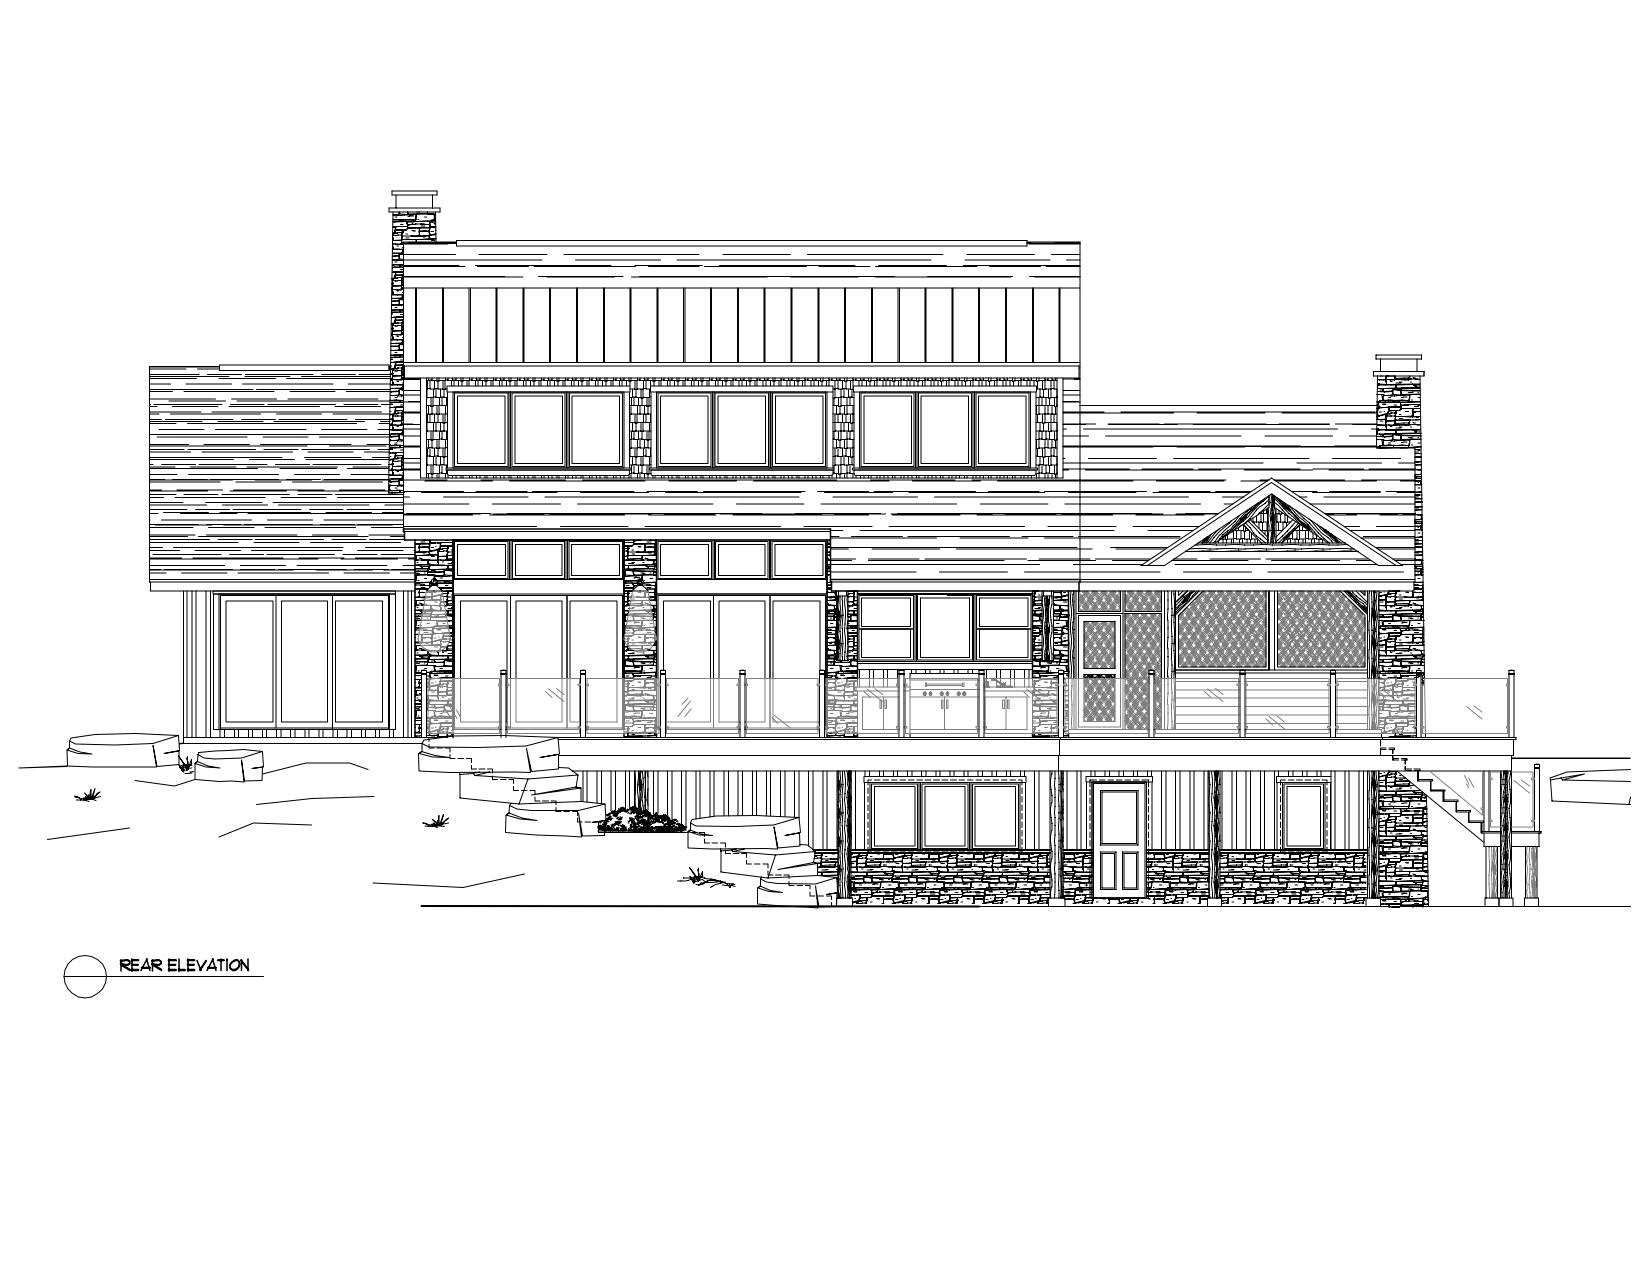 Normerica Timber Frame, House Plan, The Rosseau 3829, Rear Elevation